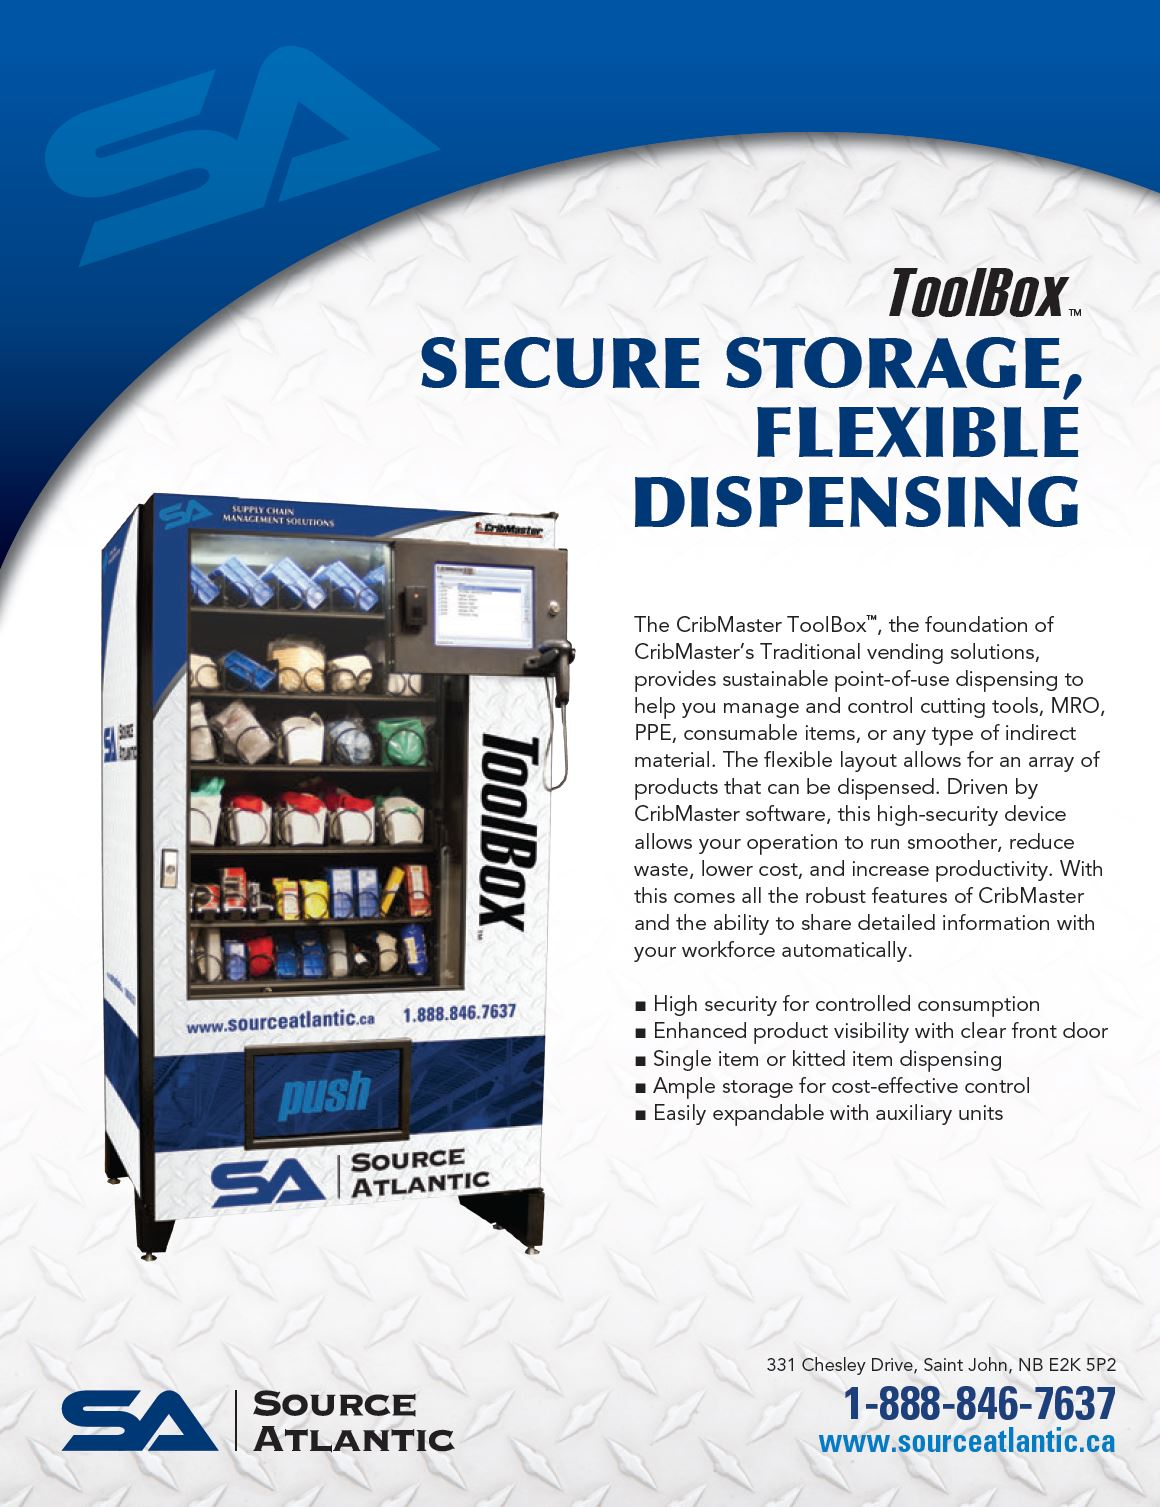 ToolBox Solution